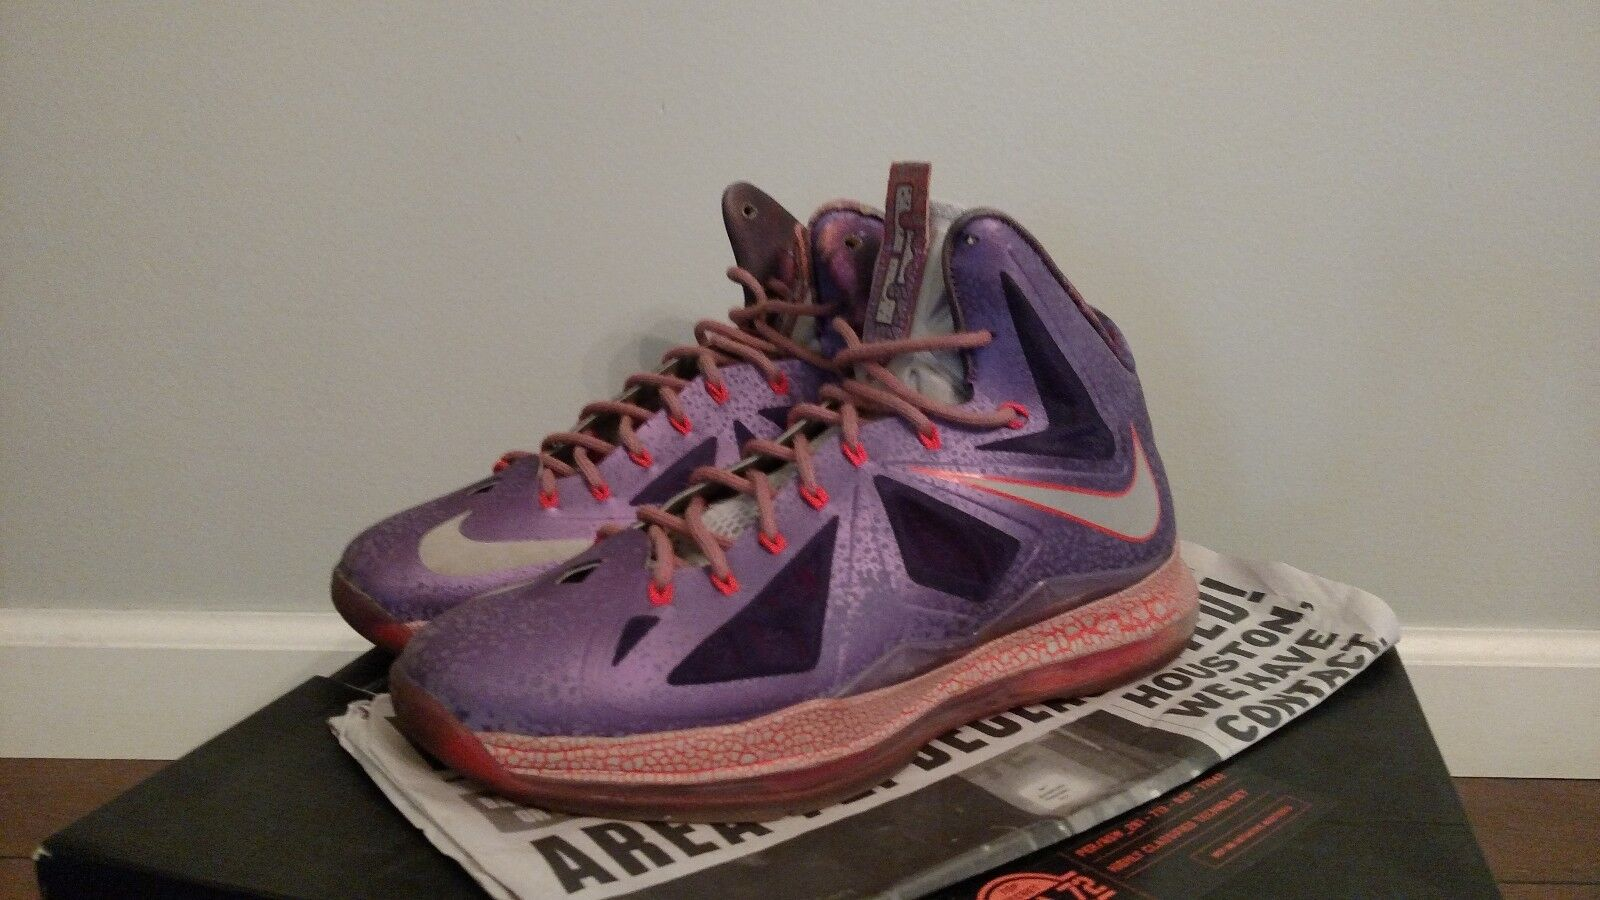 Nike lebron 10 all-star basketball shoes size 10.5 condition 9.5 10